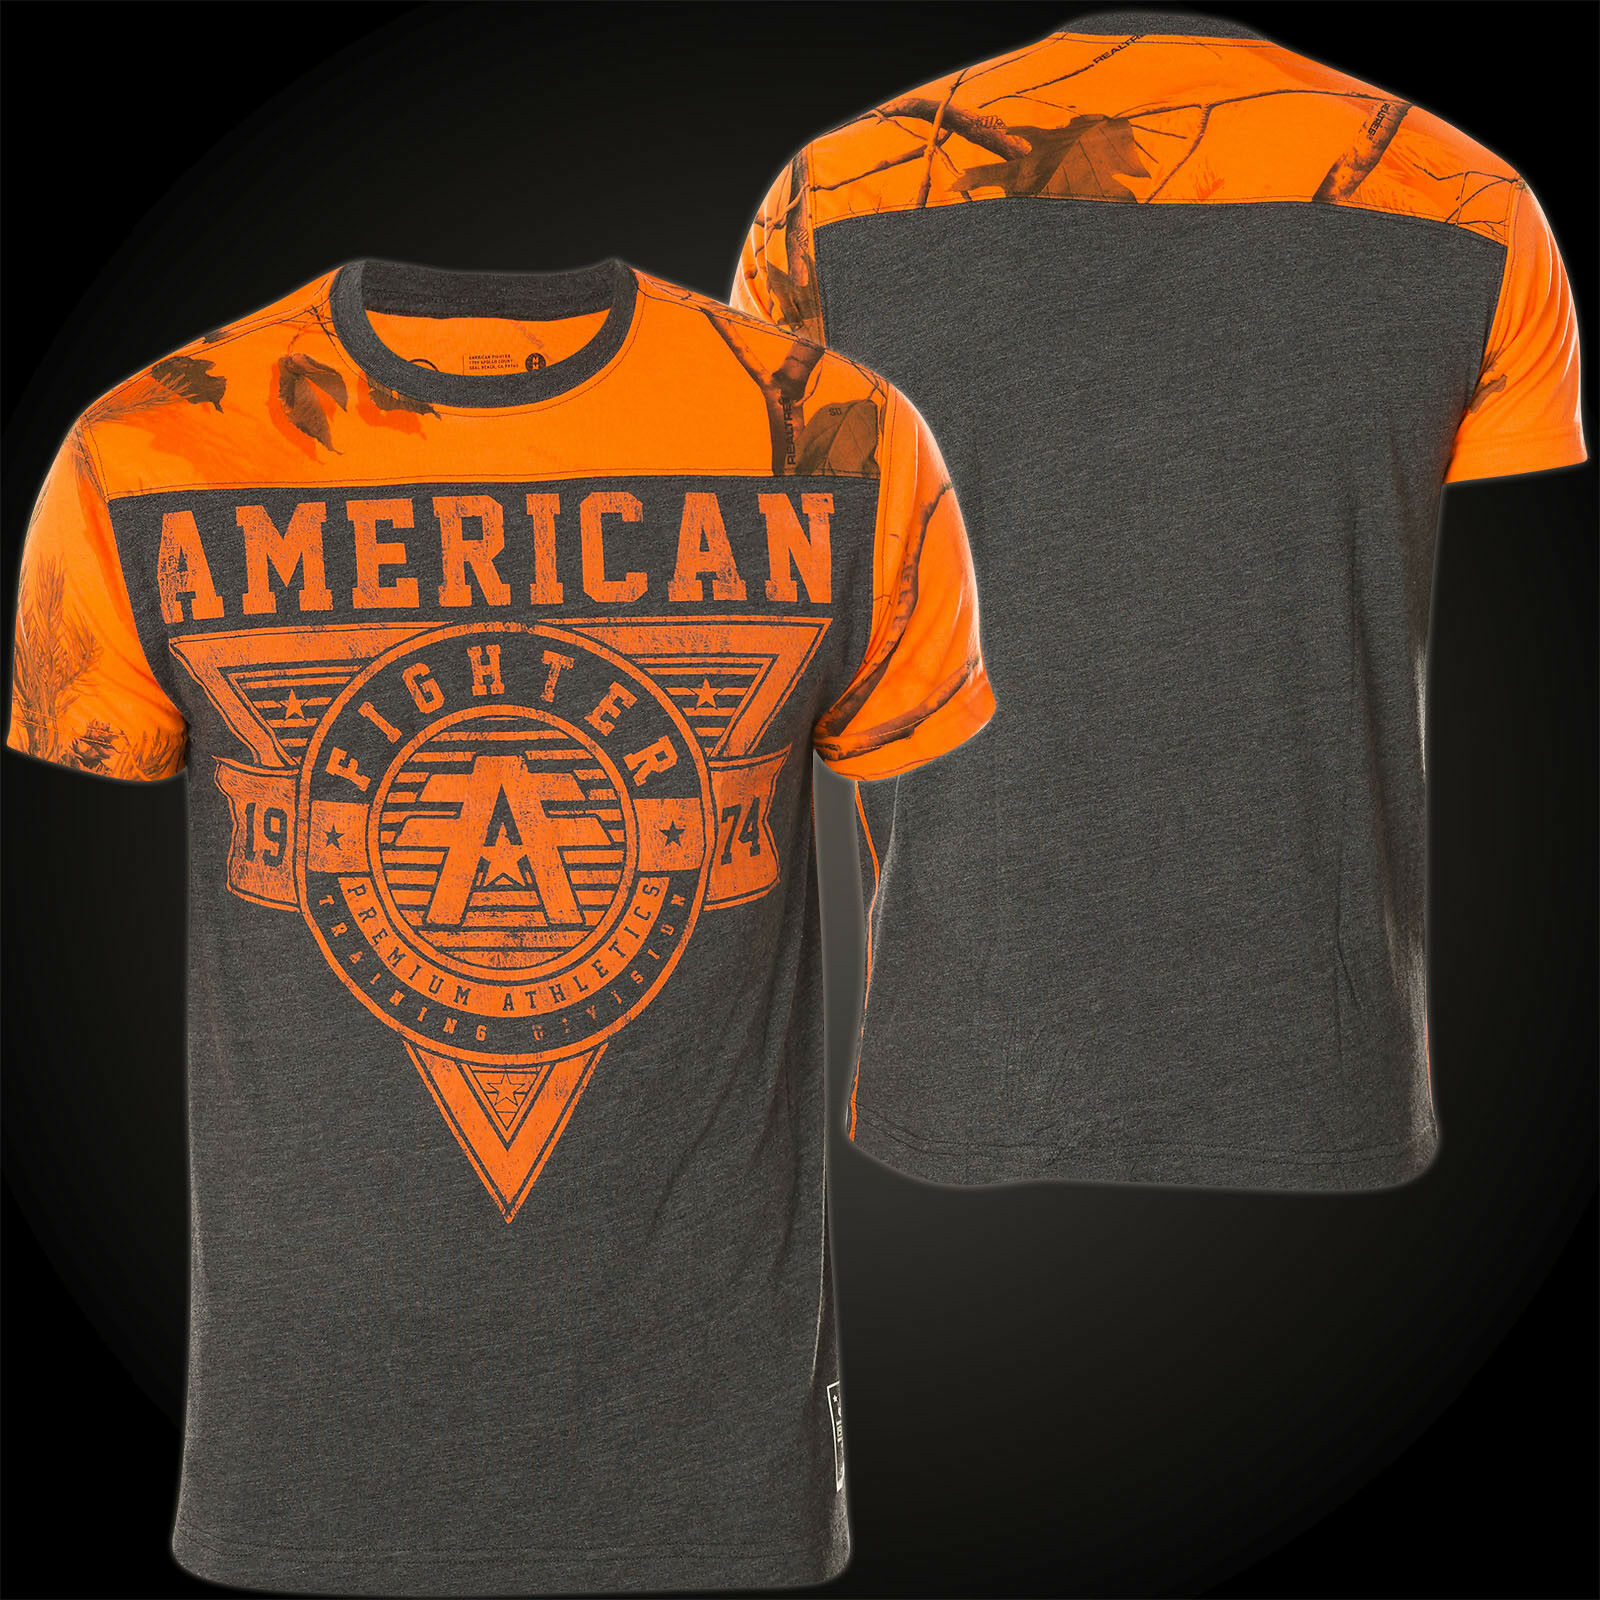 AMERICAN FIGHTER Affliction T-Shirt Charleston Scratch grey orange